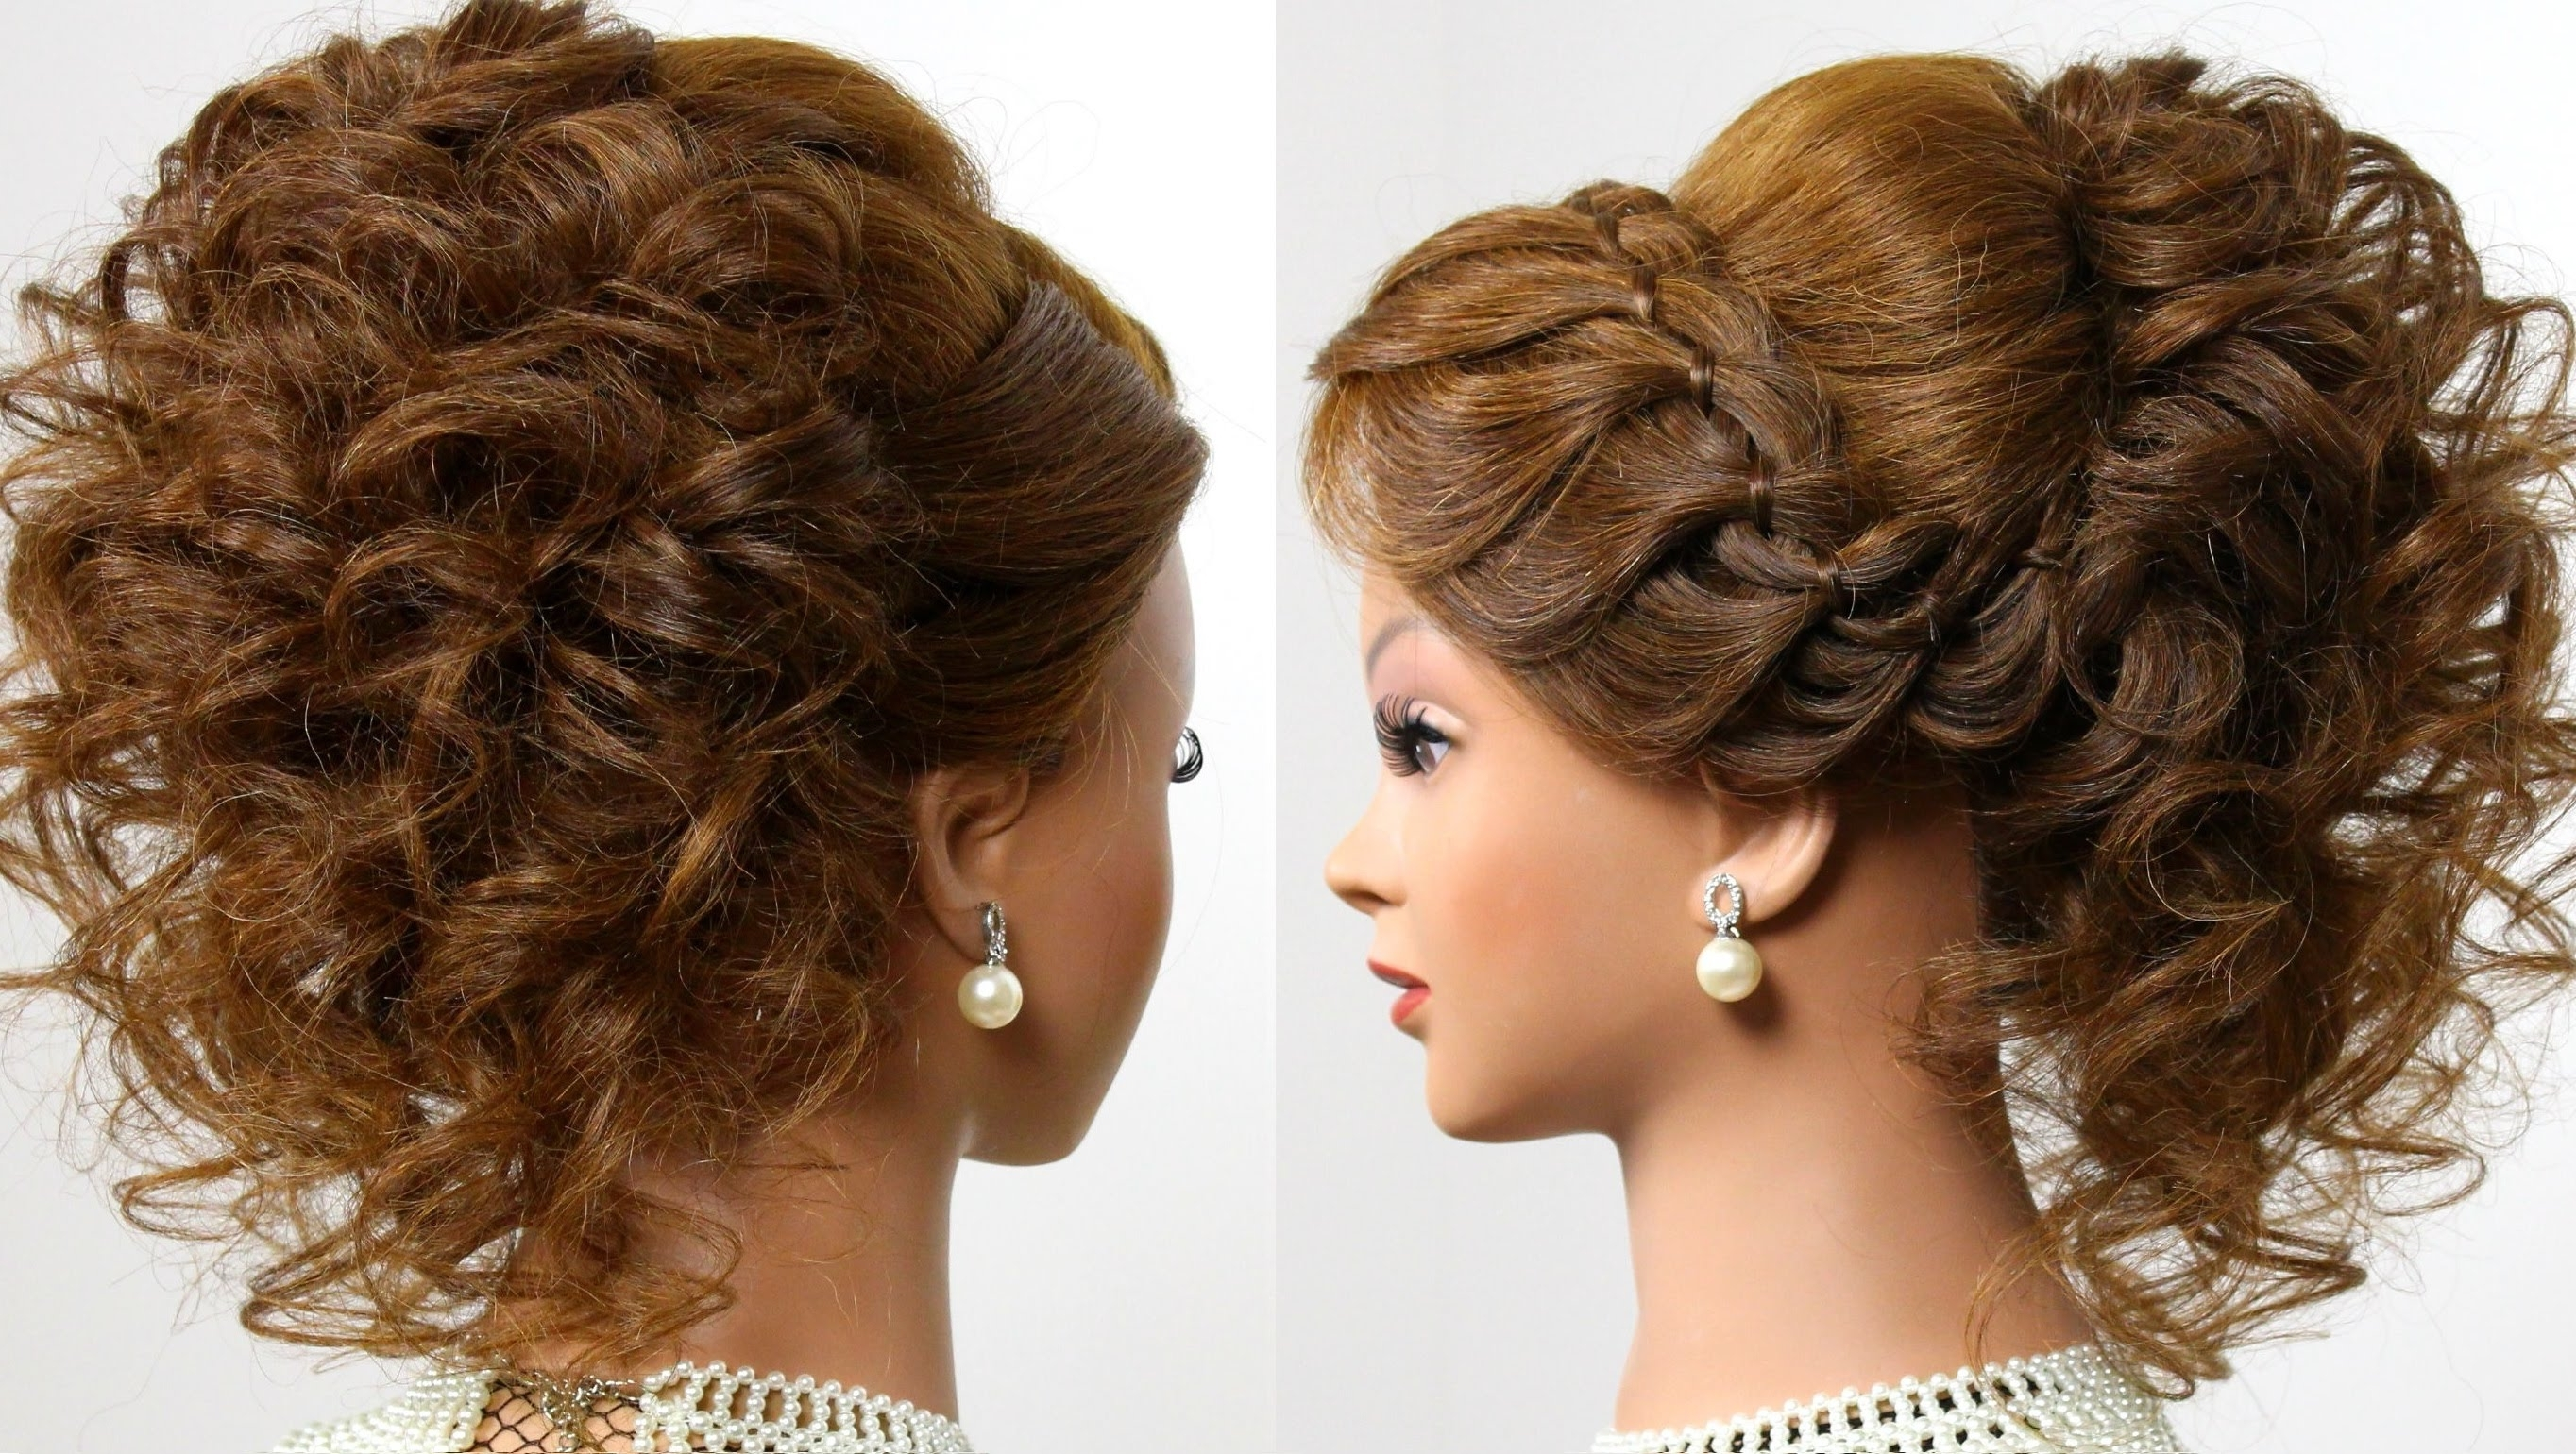 Curly Wedding Prom Hairstyle For Long Hair Sensational Romantic In Prom Updo Hairstyles For Long Hair (View 7 of 15)